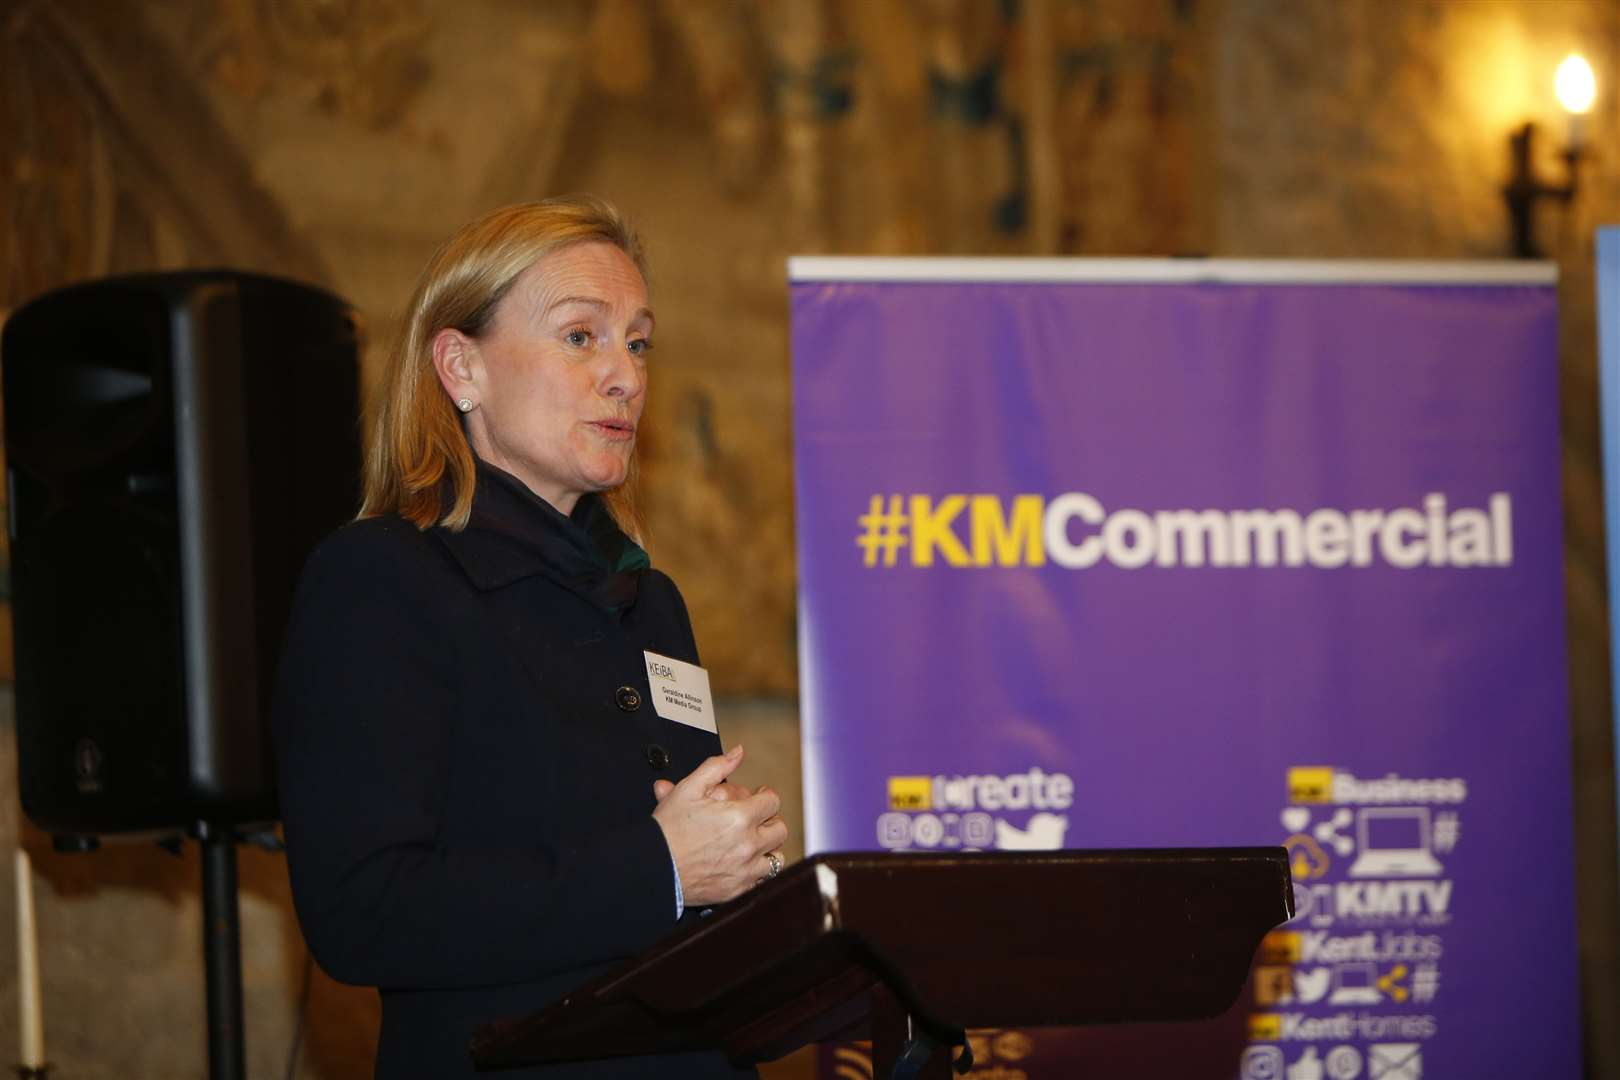 KM Media Group chairman Geraldine Allinson at the launch event for KEiBA 2019 at Allington Castle